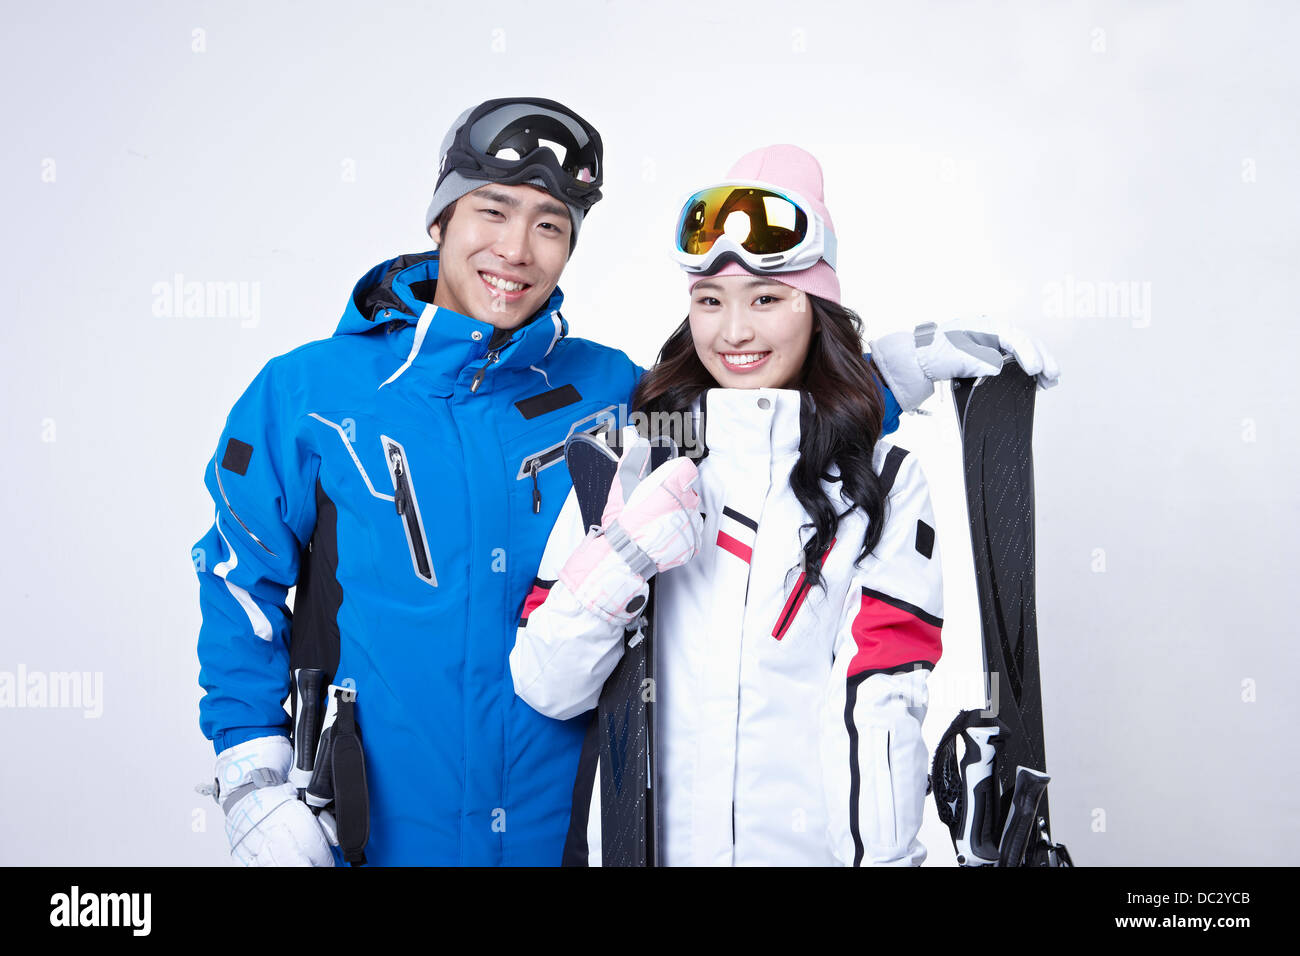 a couple in ski outfit posing in white background